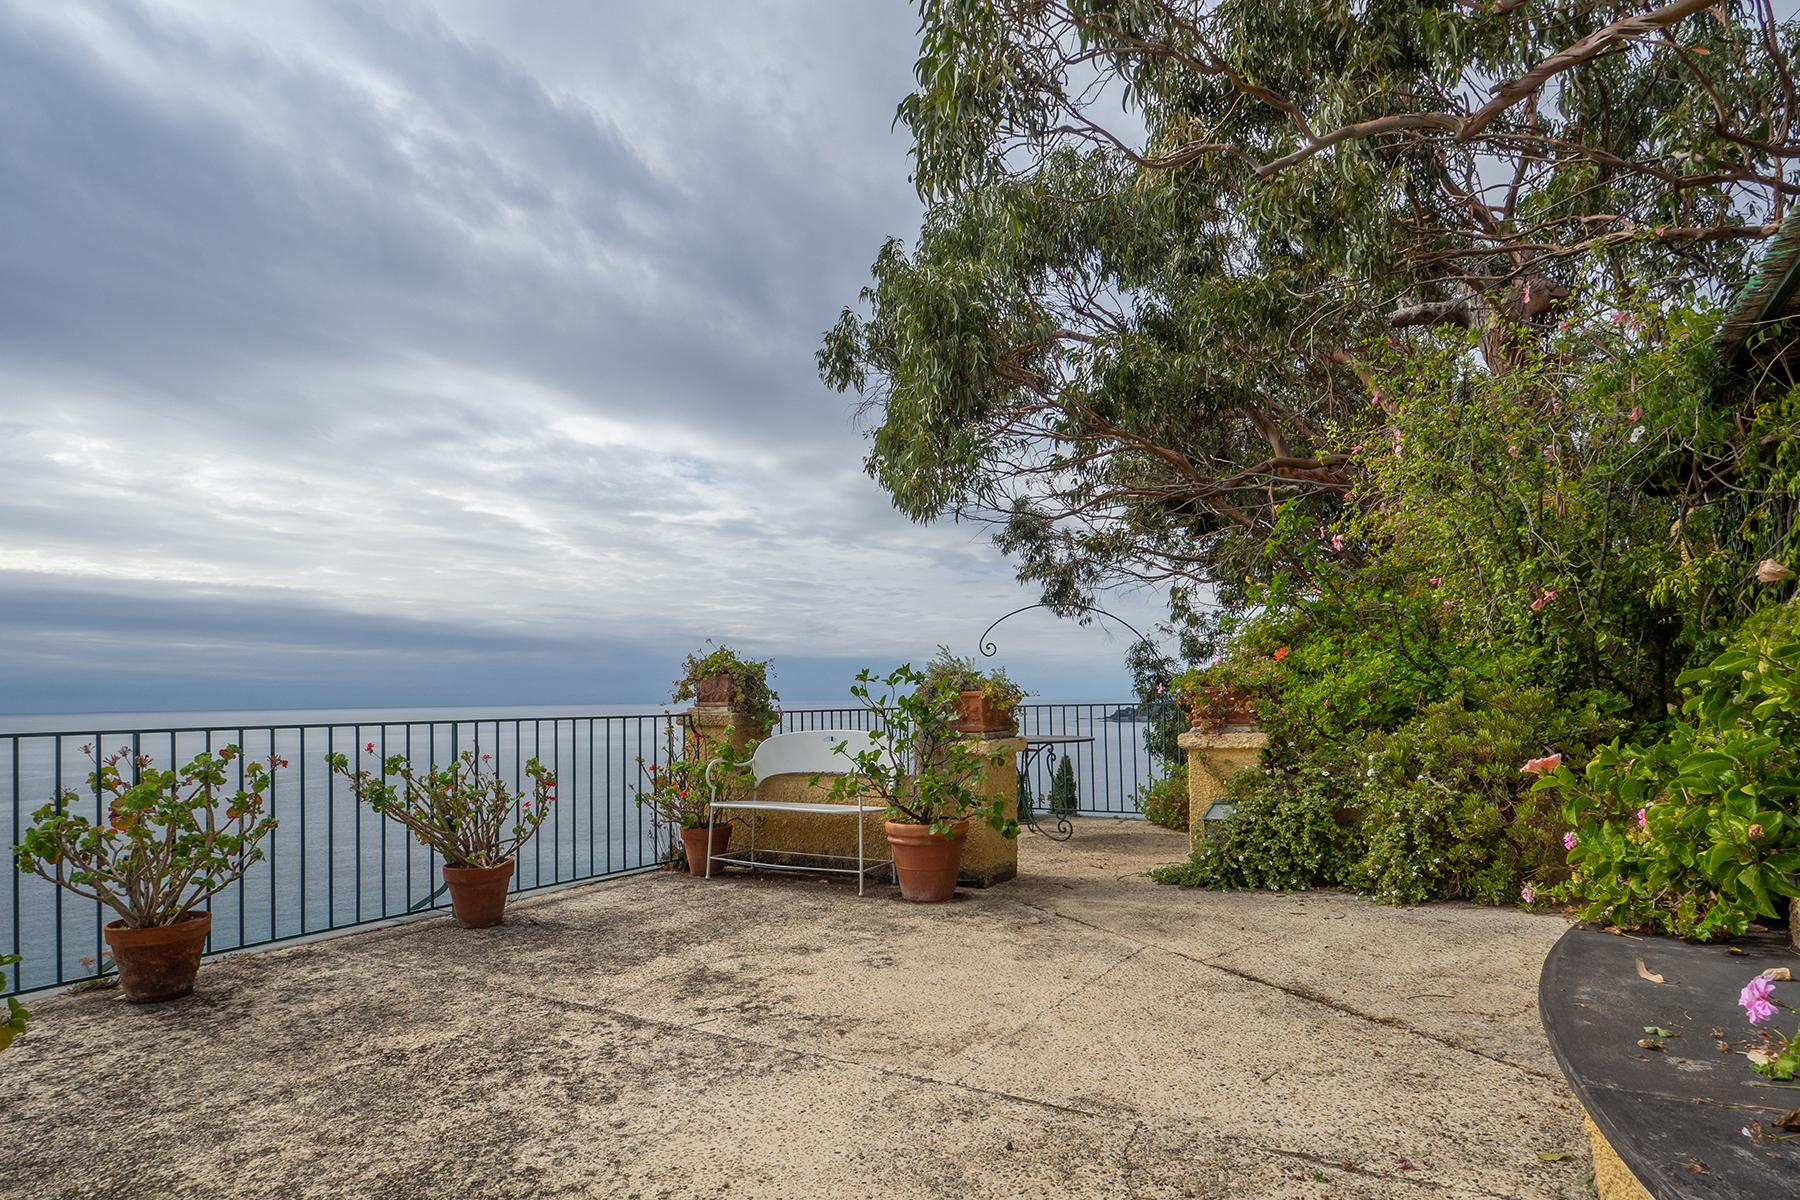 Semidetached historical villa with private access to the sea - 21